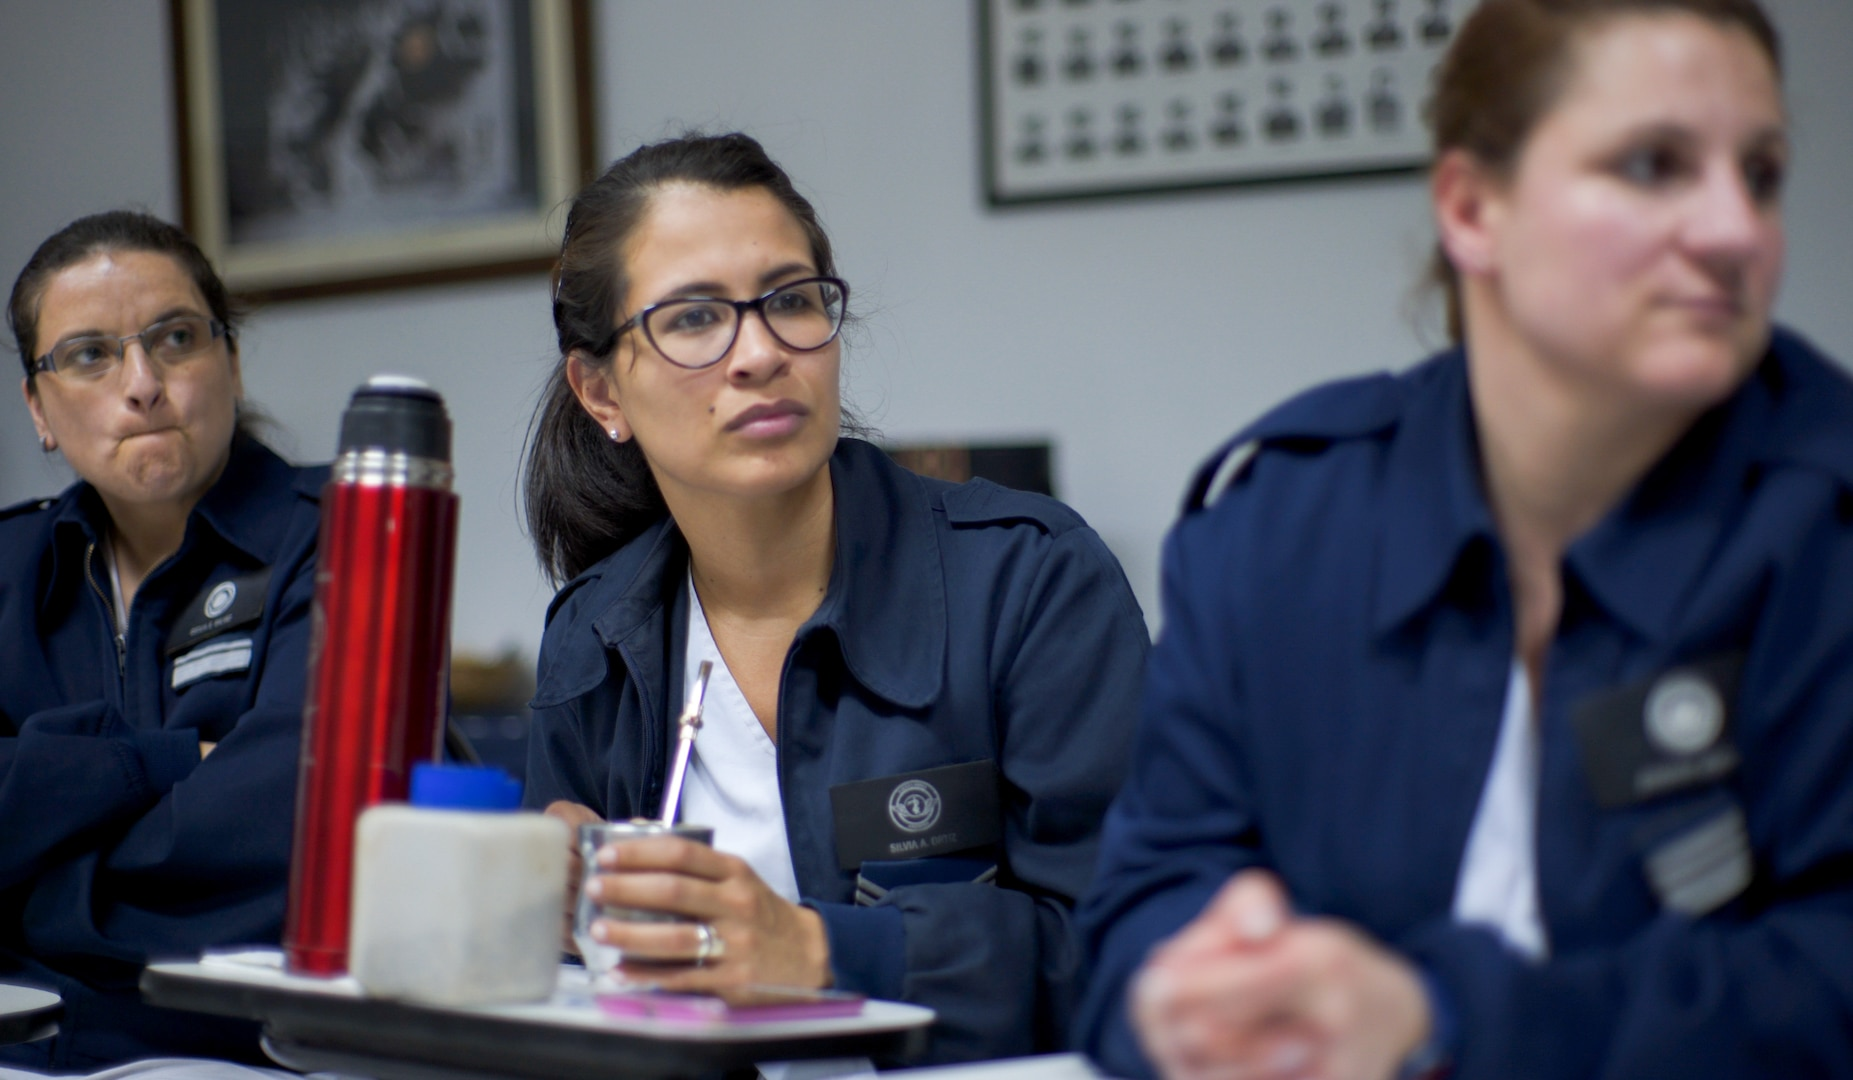 Members of the Argentinian air force medical service participate in a group discussion during a senior leader engagement as part of the Department of Defense State Partnership Program Sep. 20 at the National Institute of Aeronautical and Space Medicine, Argentina.